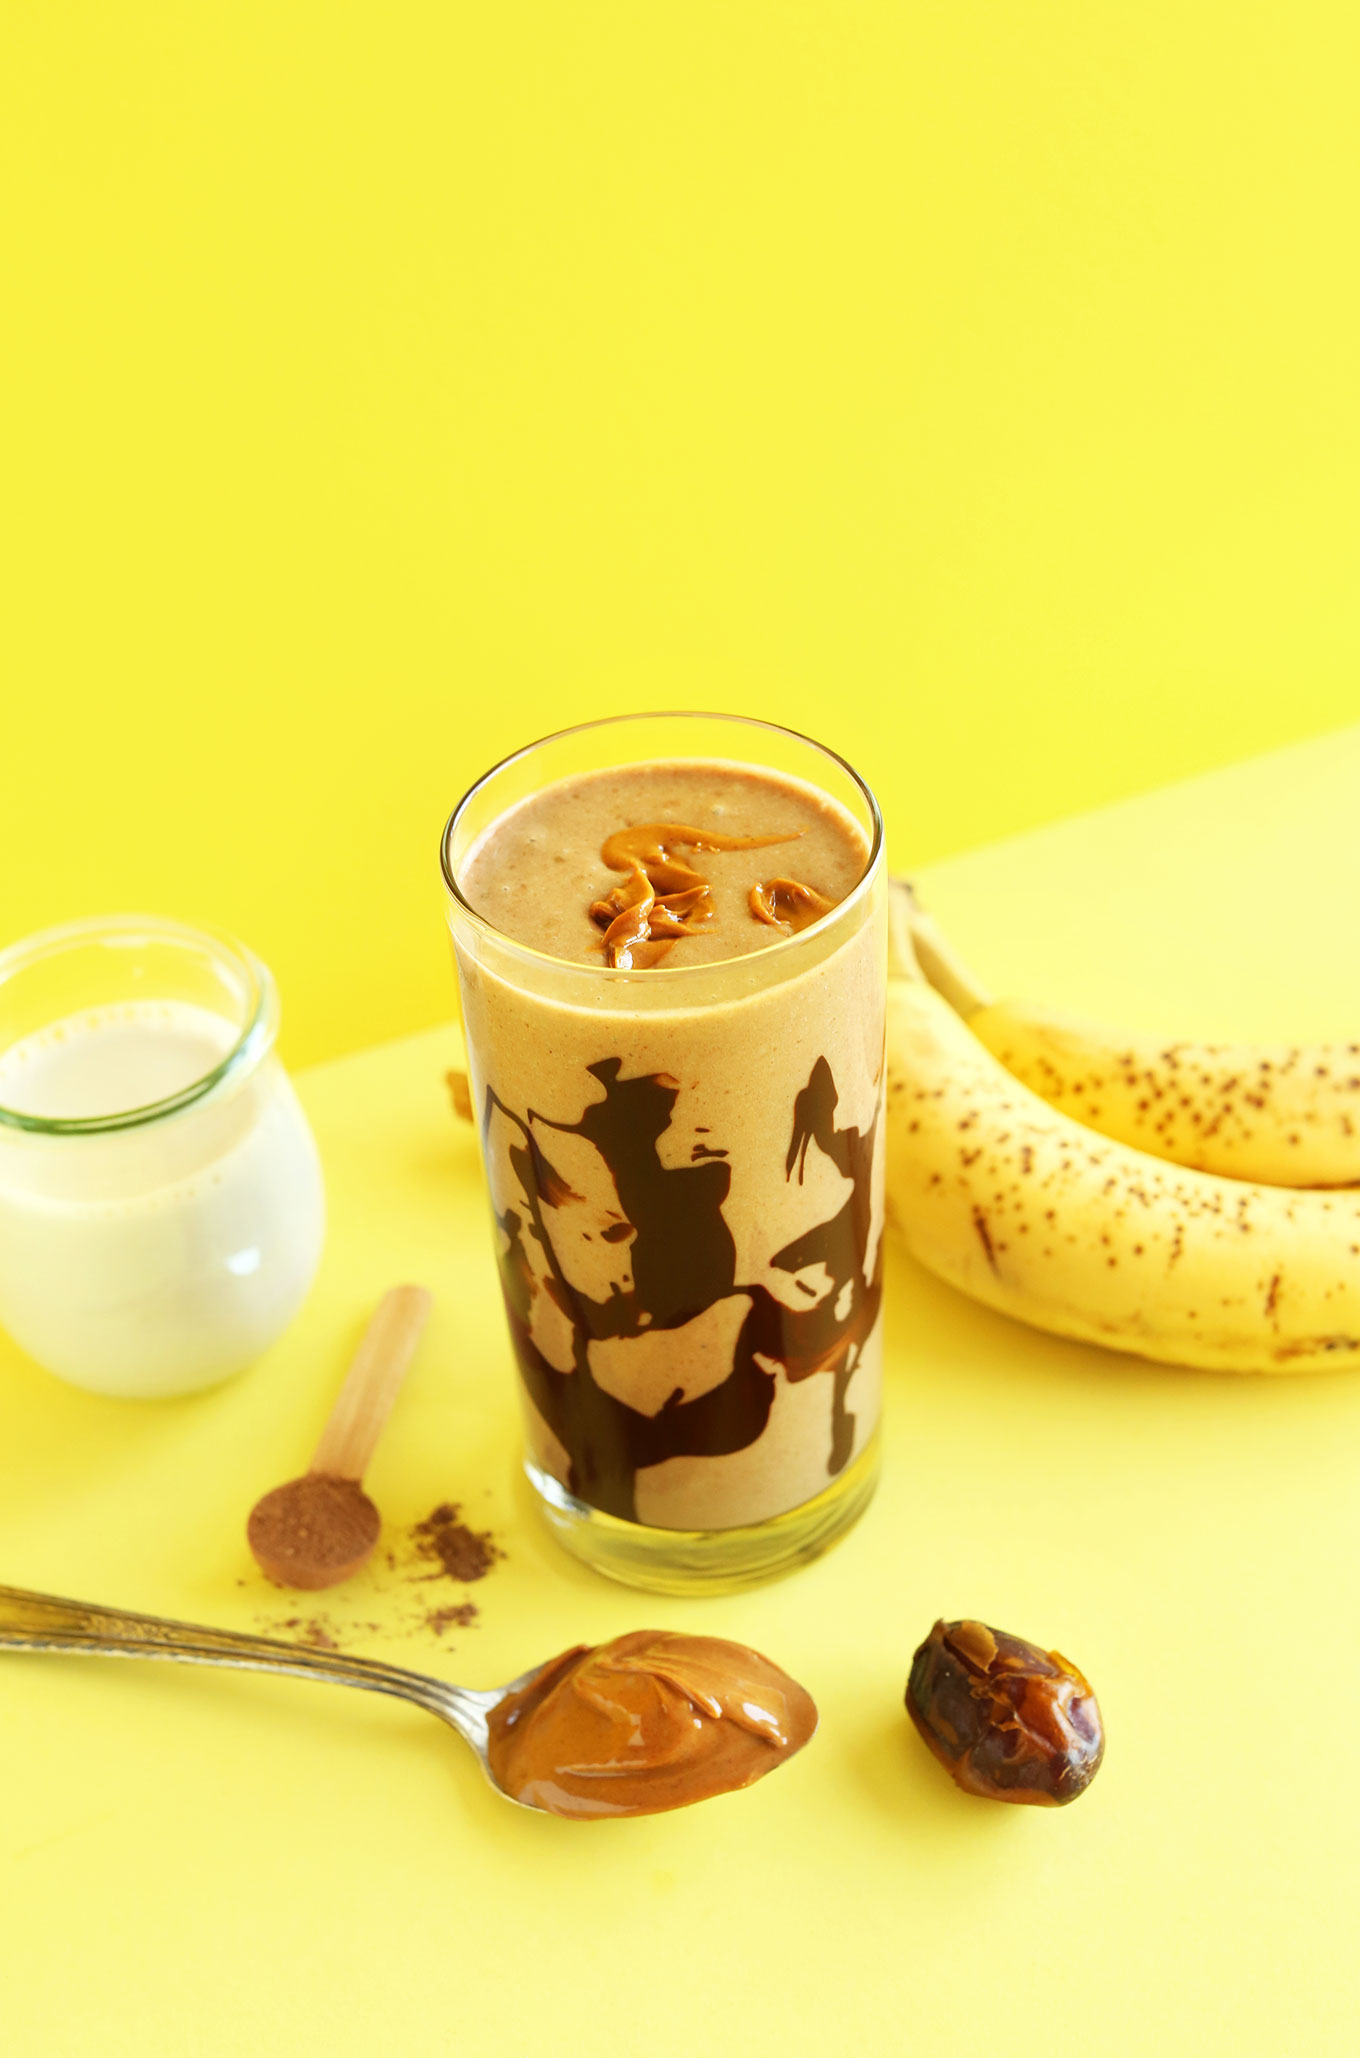 Creamy vegan Peanut Butter Chocolate Shake surrounded by ingredients used to make it